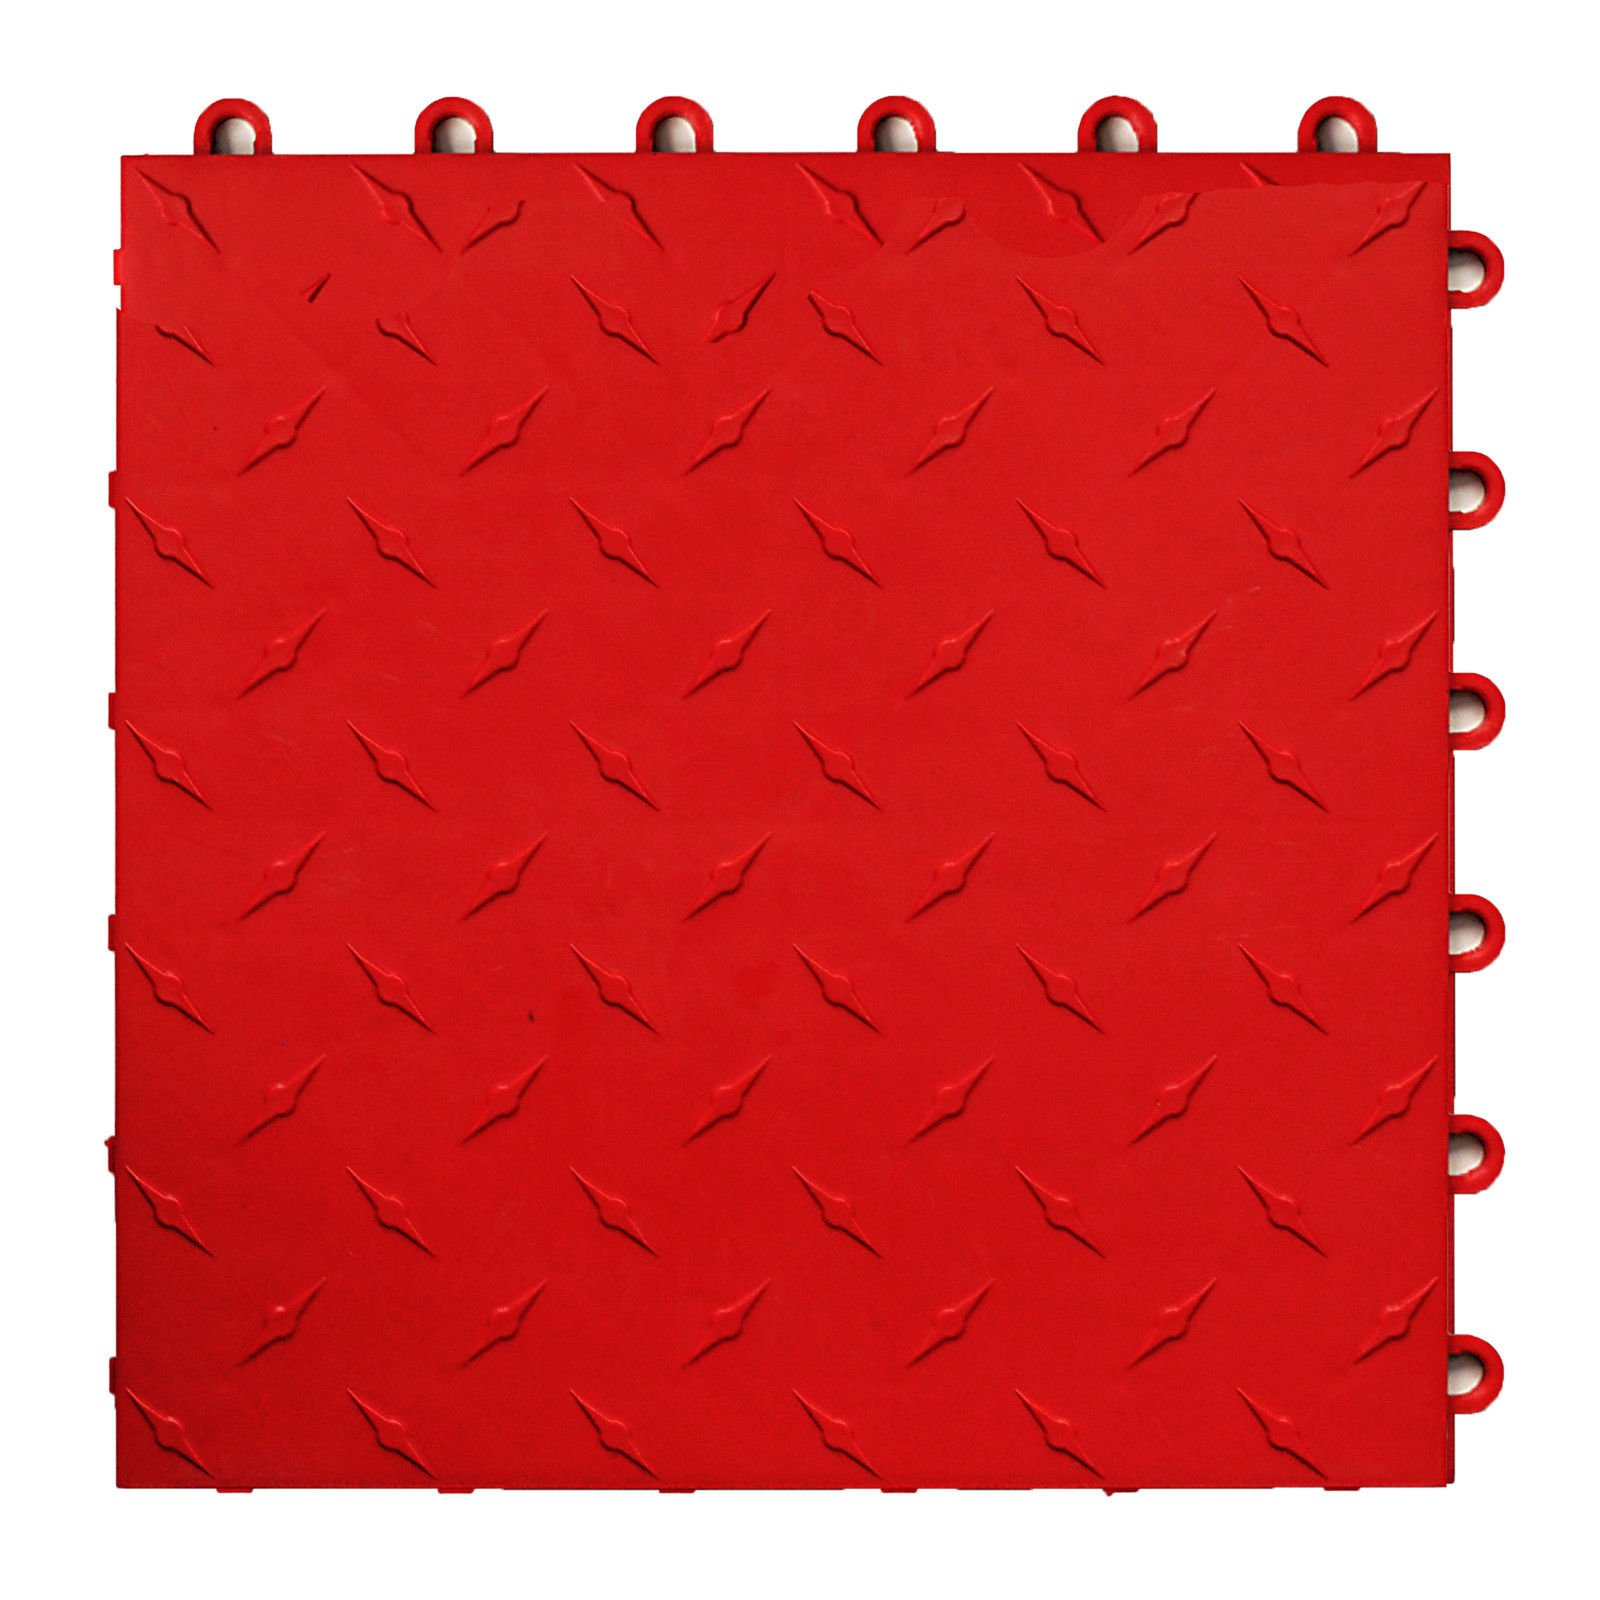 Speedway Garage Tile 789453O-50 Diamond Garage Floor 6 LOCK Diamond Tile 50 Pack,Red by Speedway Garage Tile Mfg.